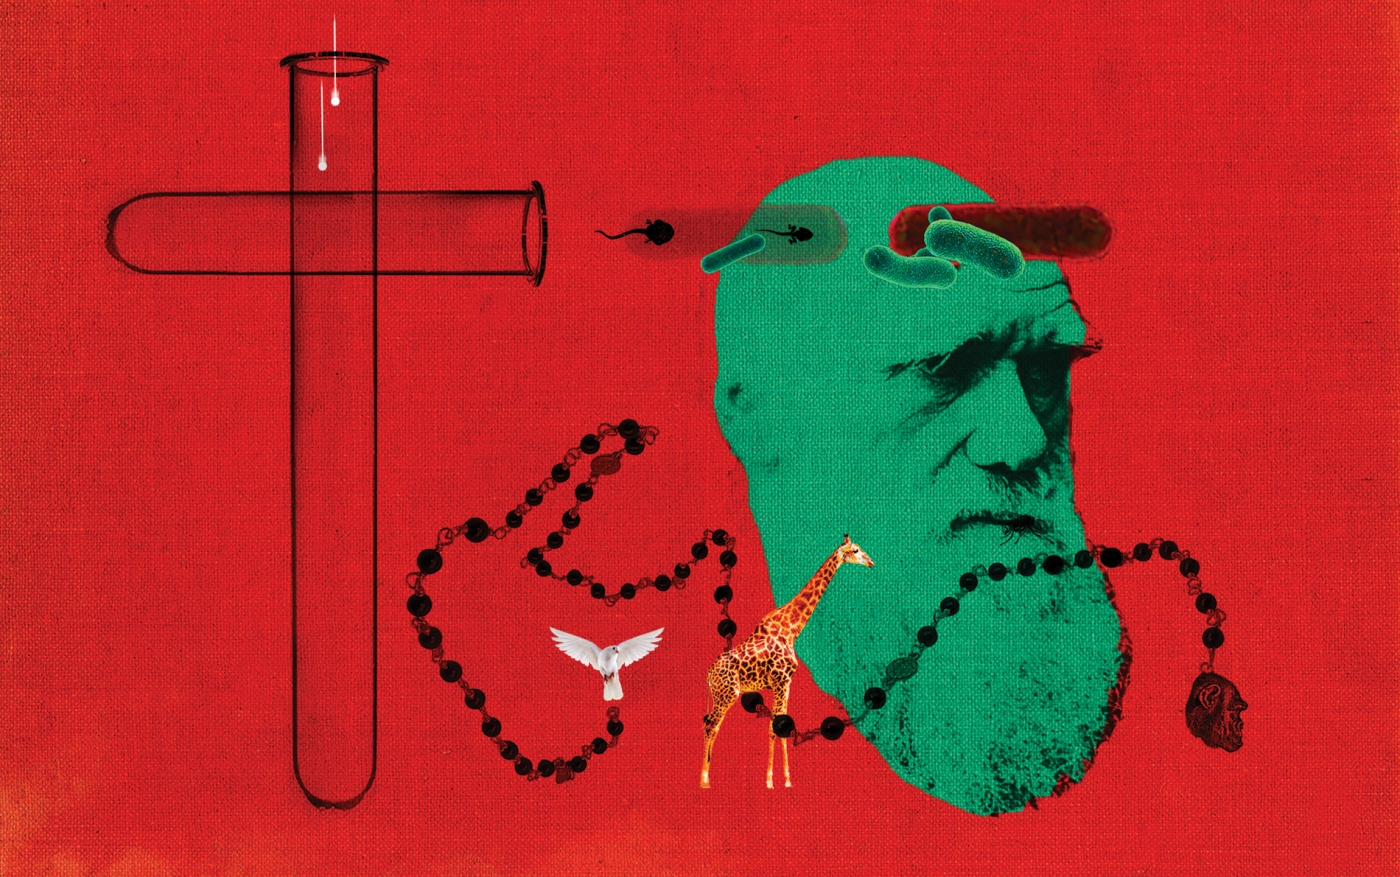 Illustration of Charles Darwin, test tubes, and a Catholic rosary.